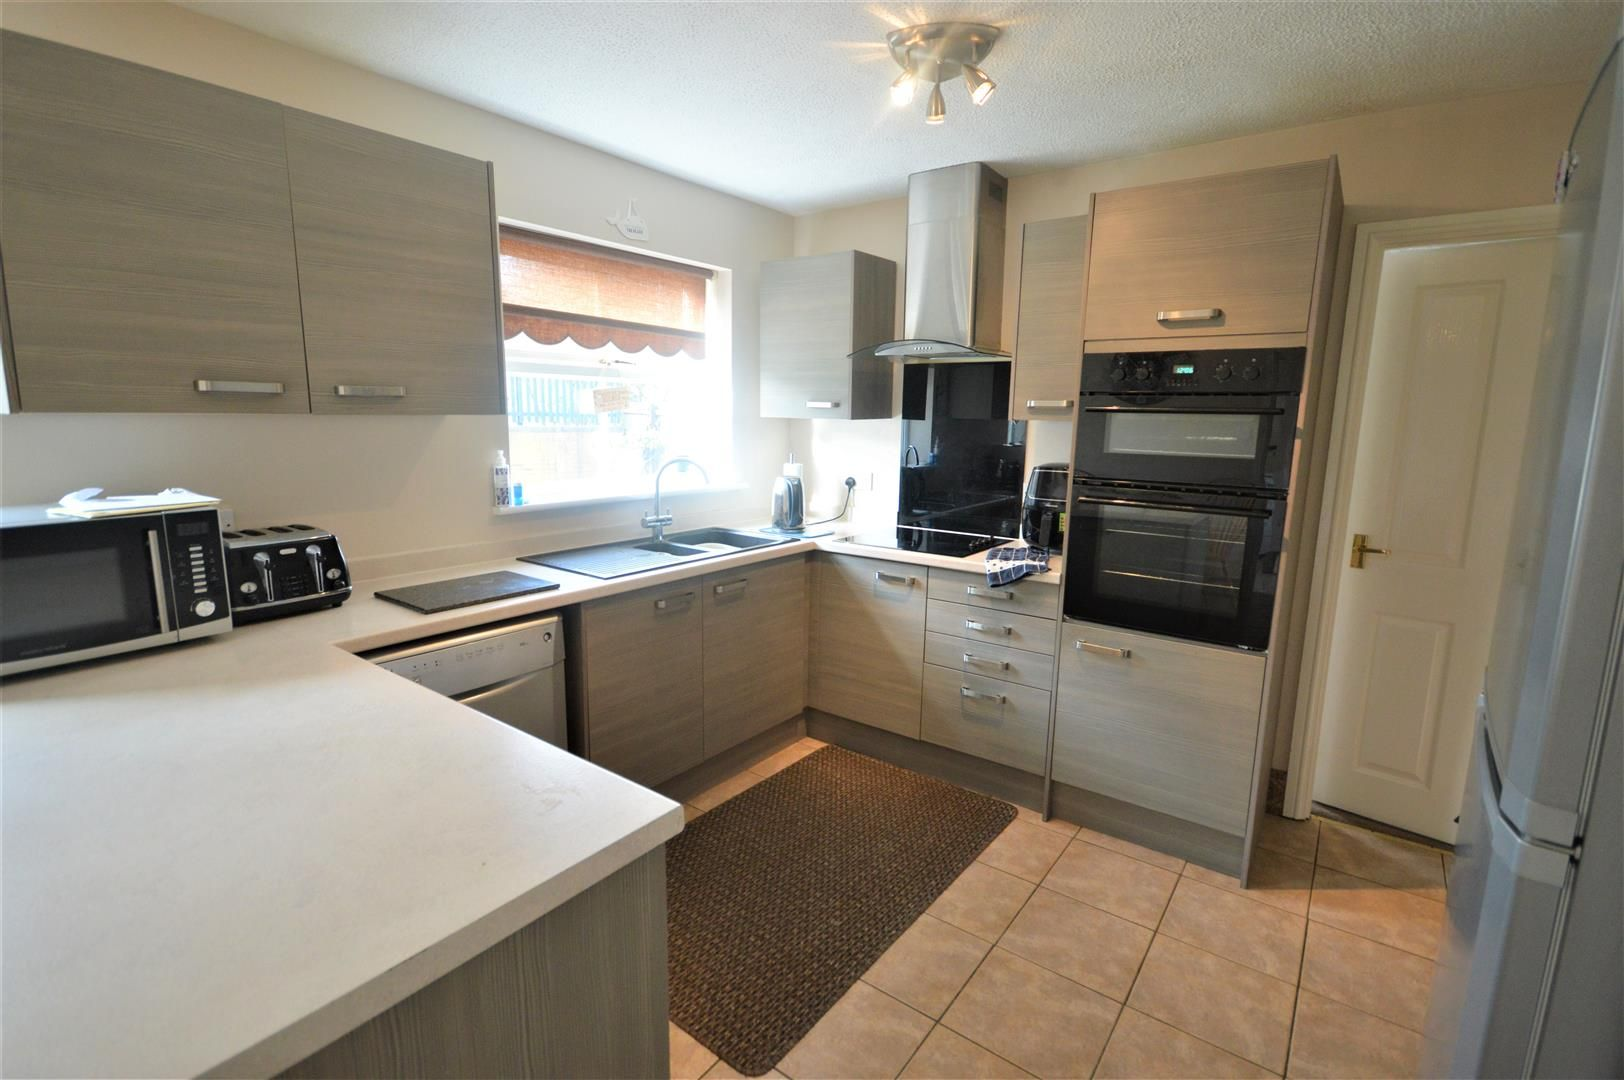 5 bed detached for sale in Leominster  - Property Image 4